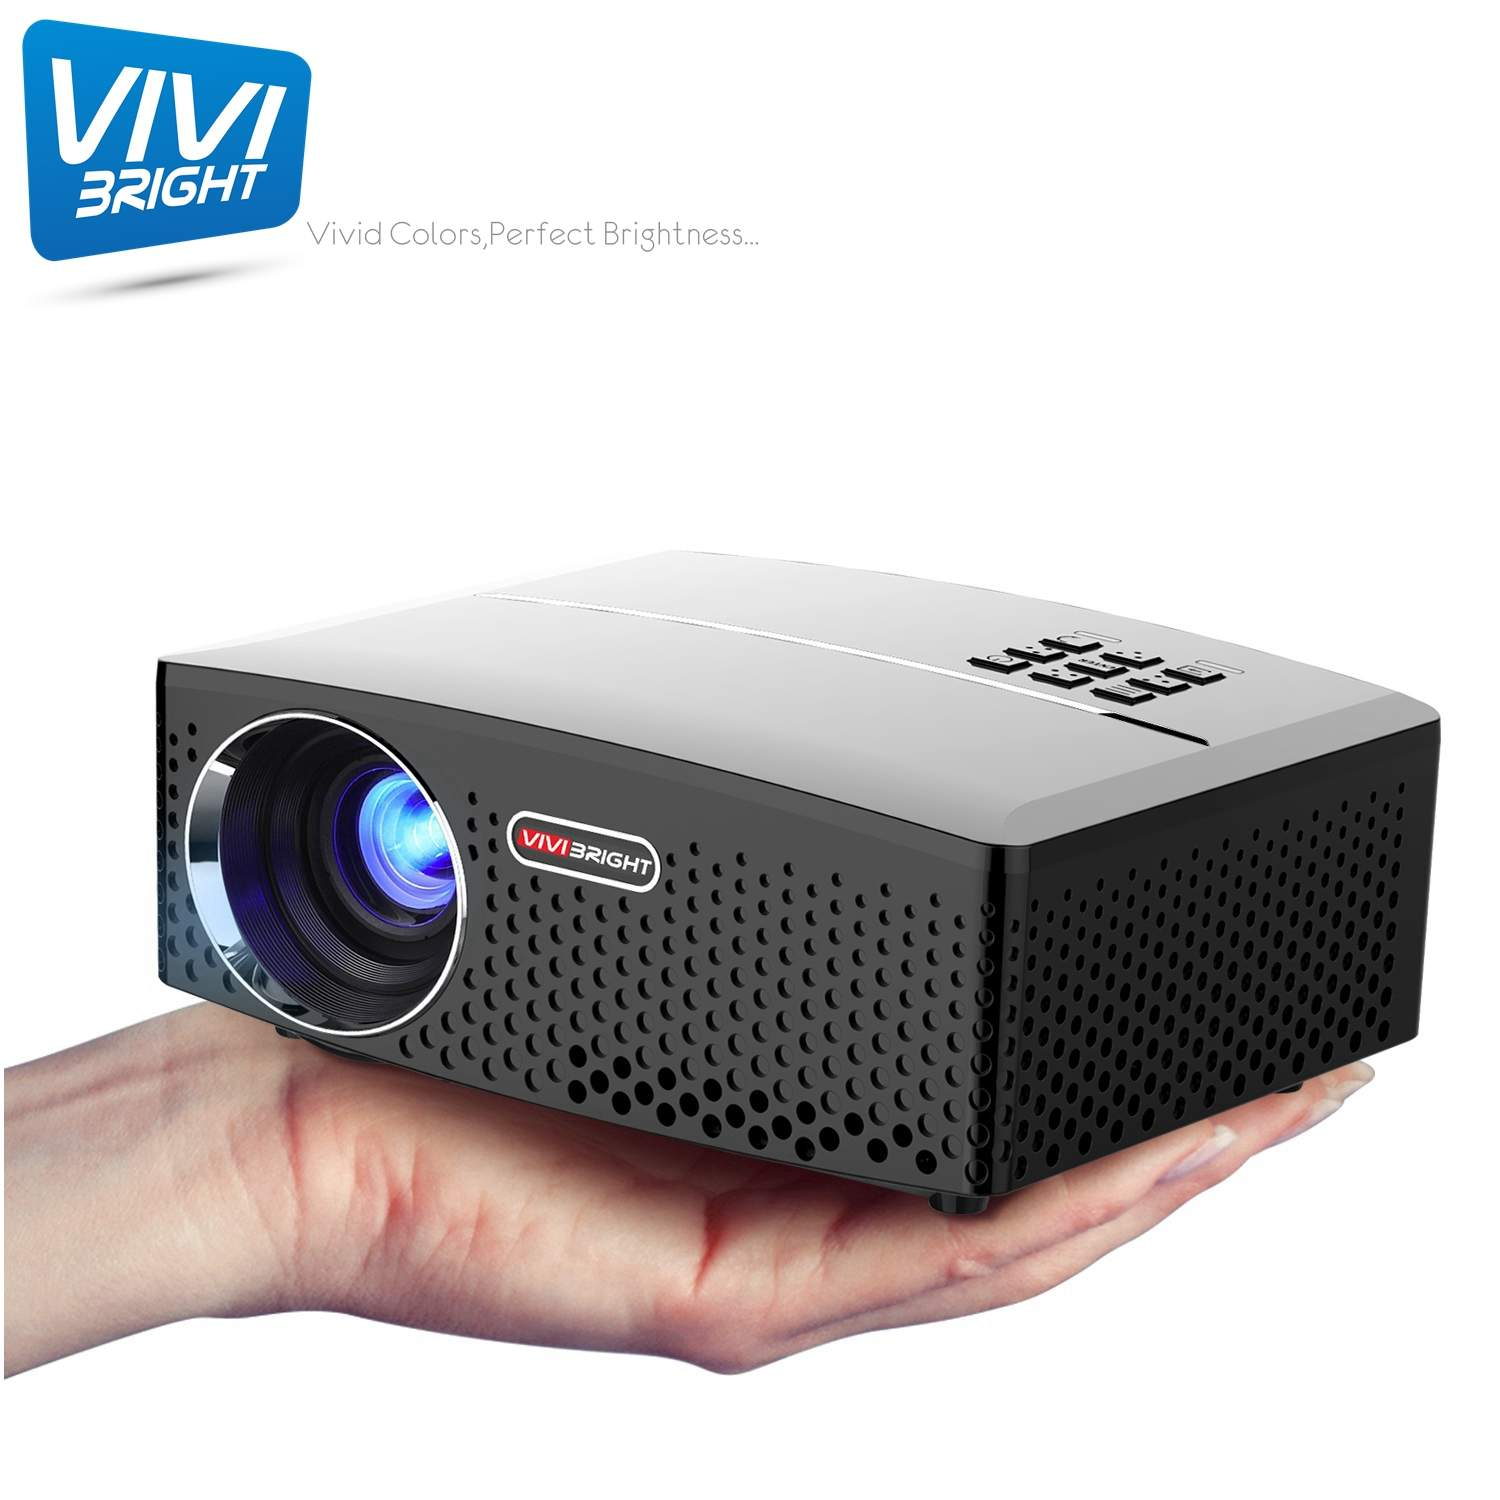 Vivibright GP80 New Projector 1800Ansi Lumen Full HD 1920 x 1080P LED LCD Projector For Home